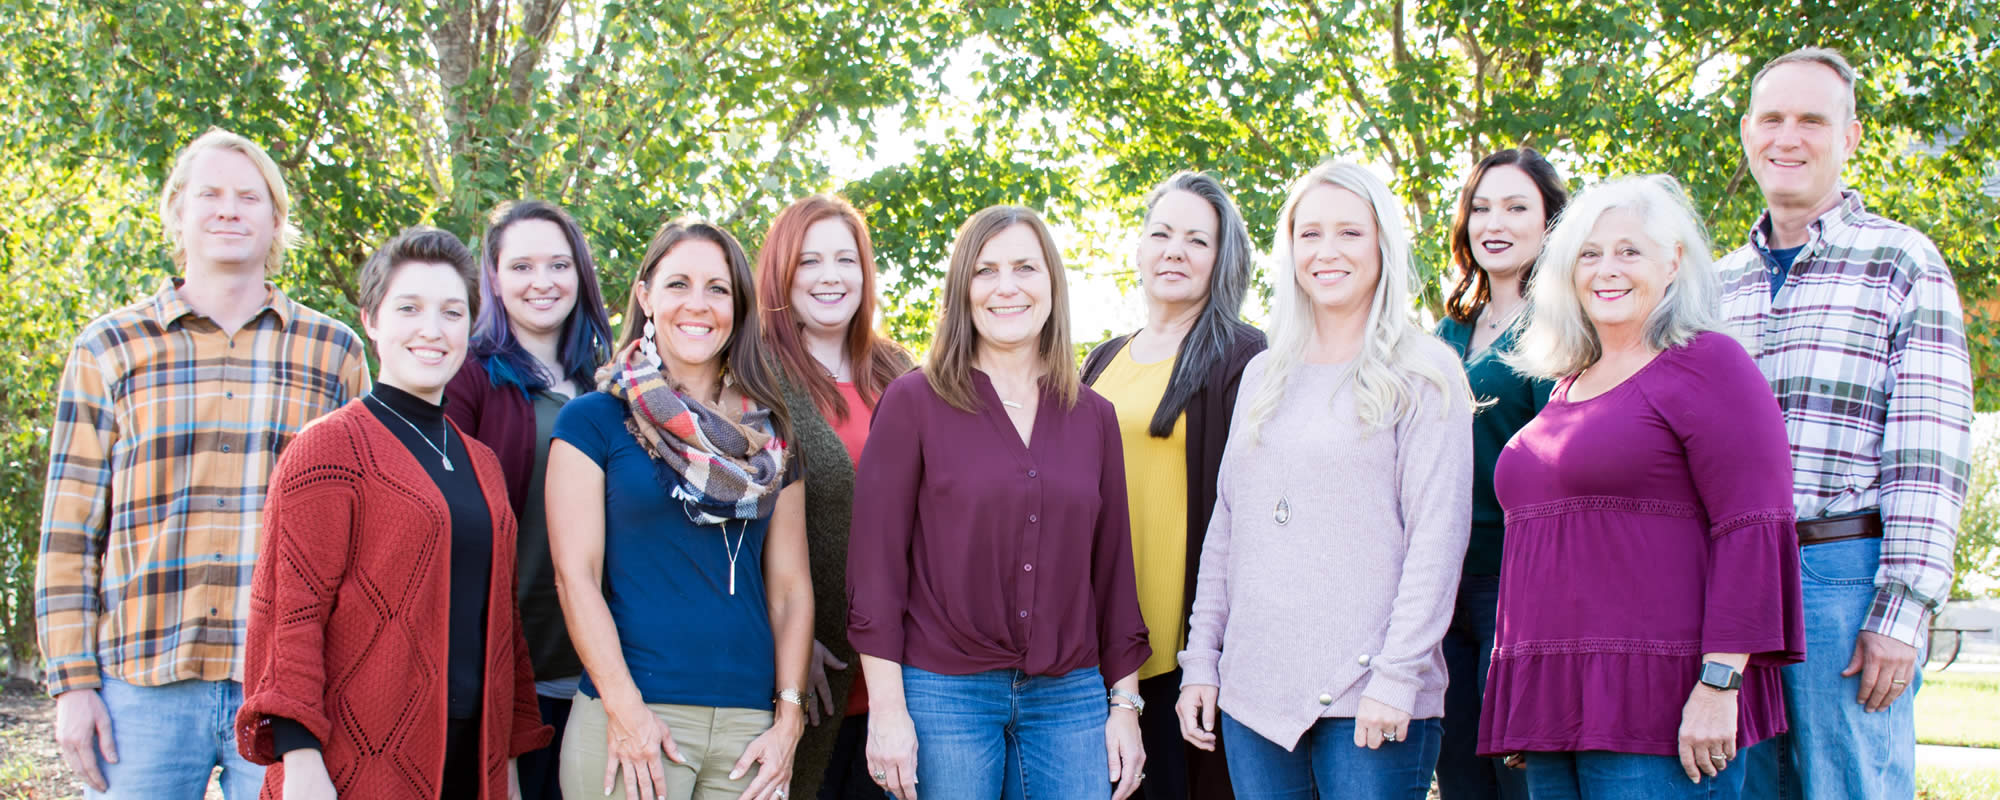 Counseling Associates of the Four States - Meet our Counselors